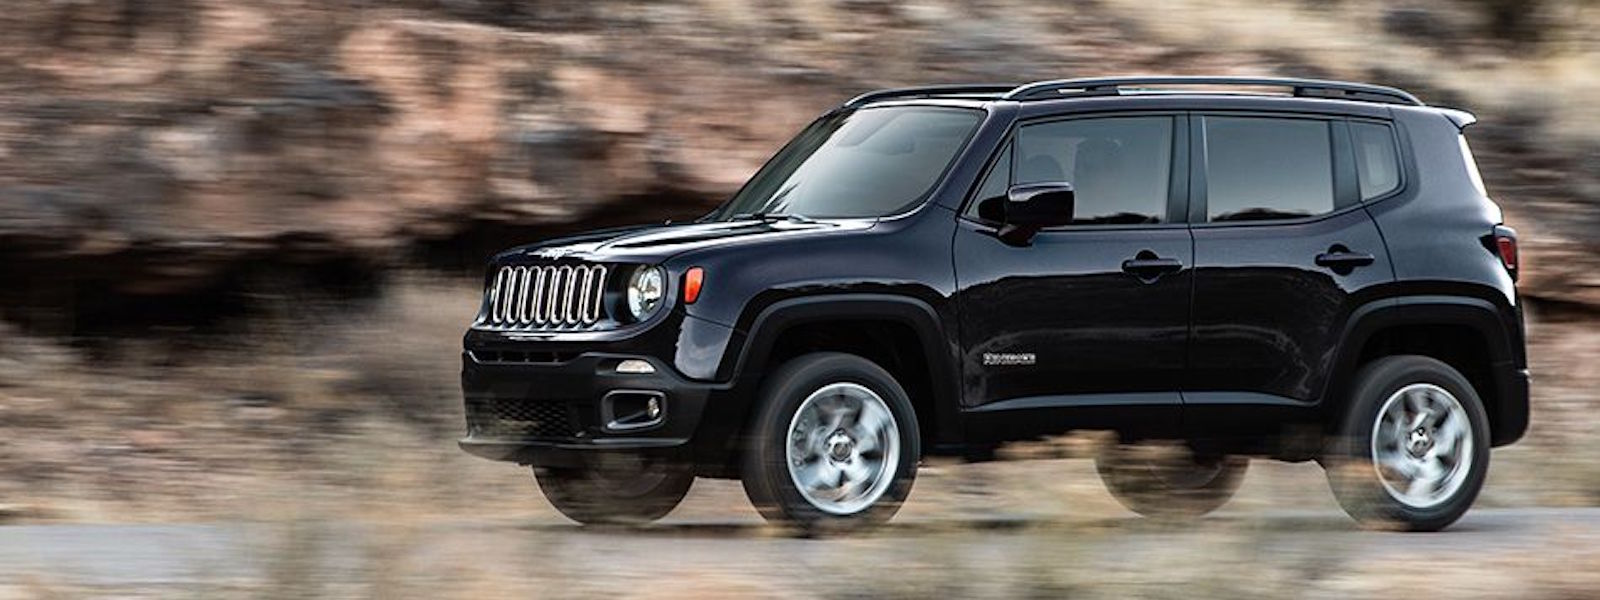 2016 jeep renegade keene nh keene chrysler dodge jeep ram. Black Bedroom Furniture Sets. Home Design Ideas